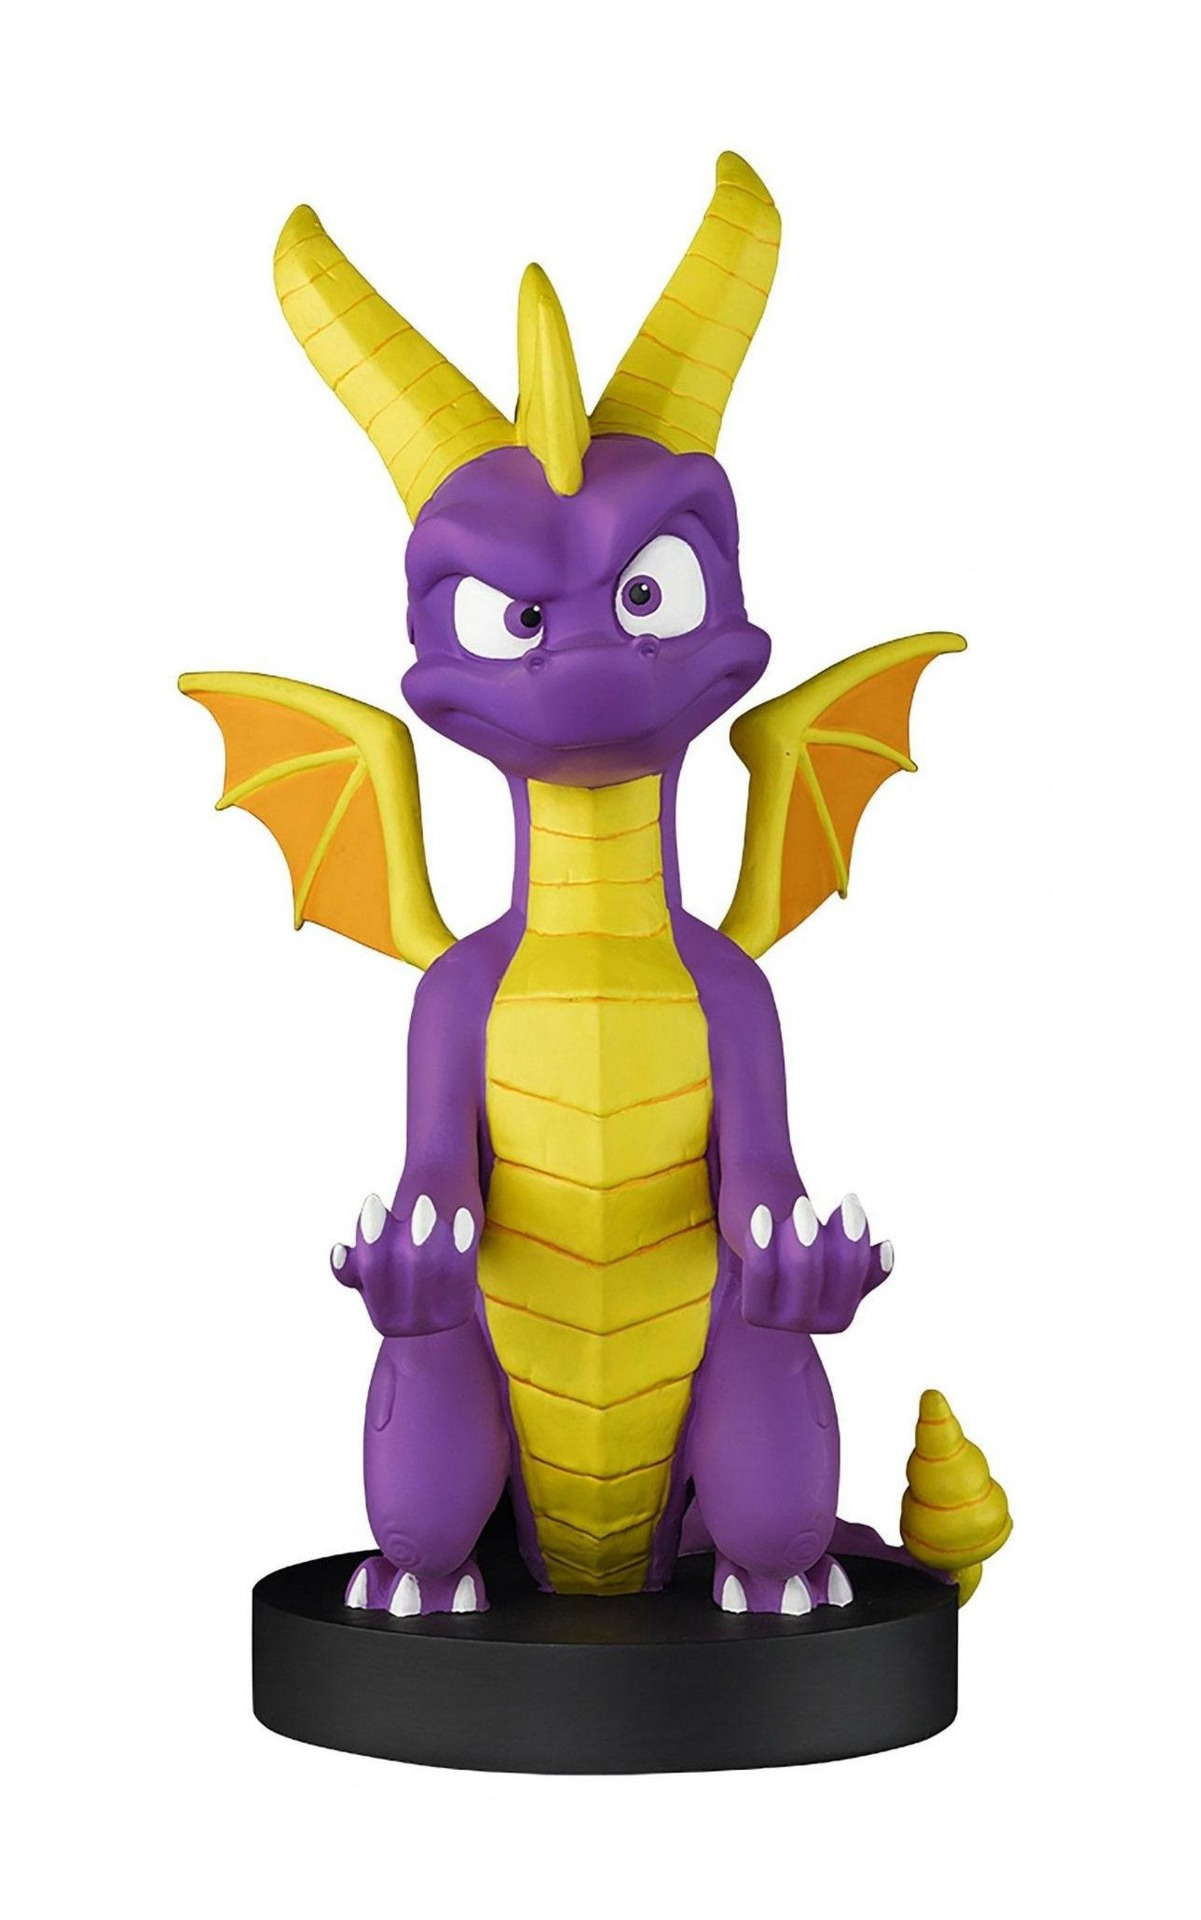 Figurka Cable Guy - Spyro (PC)